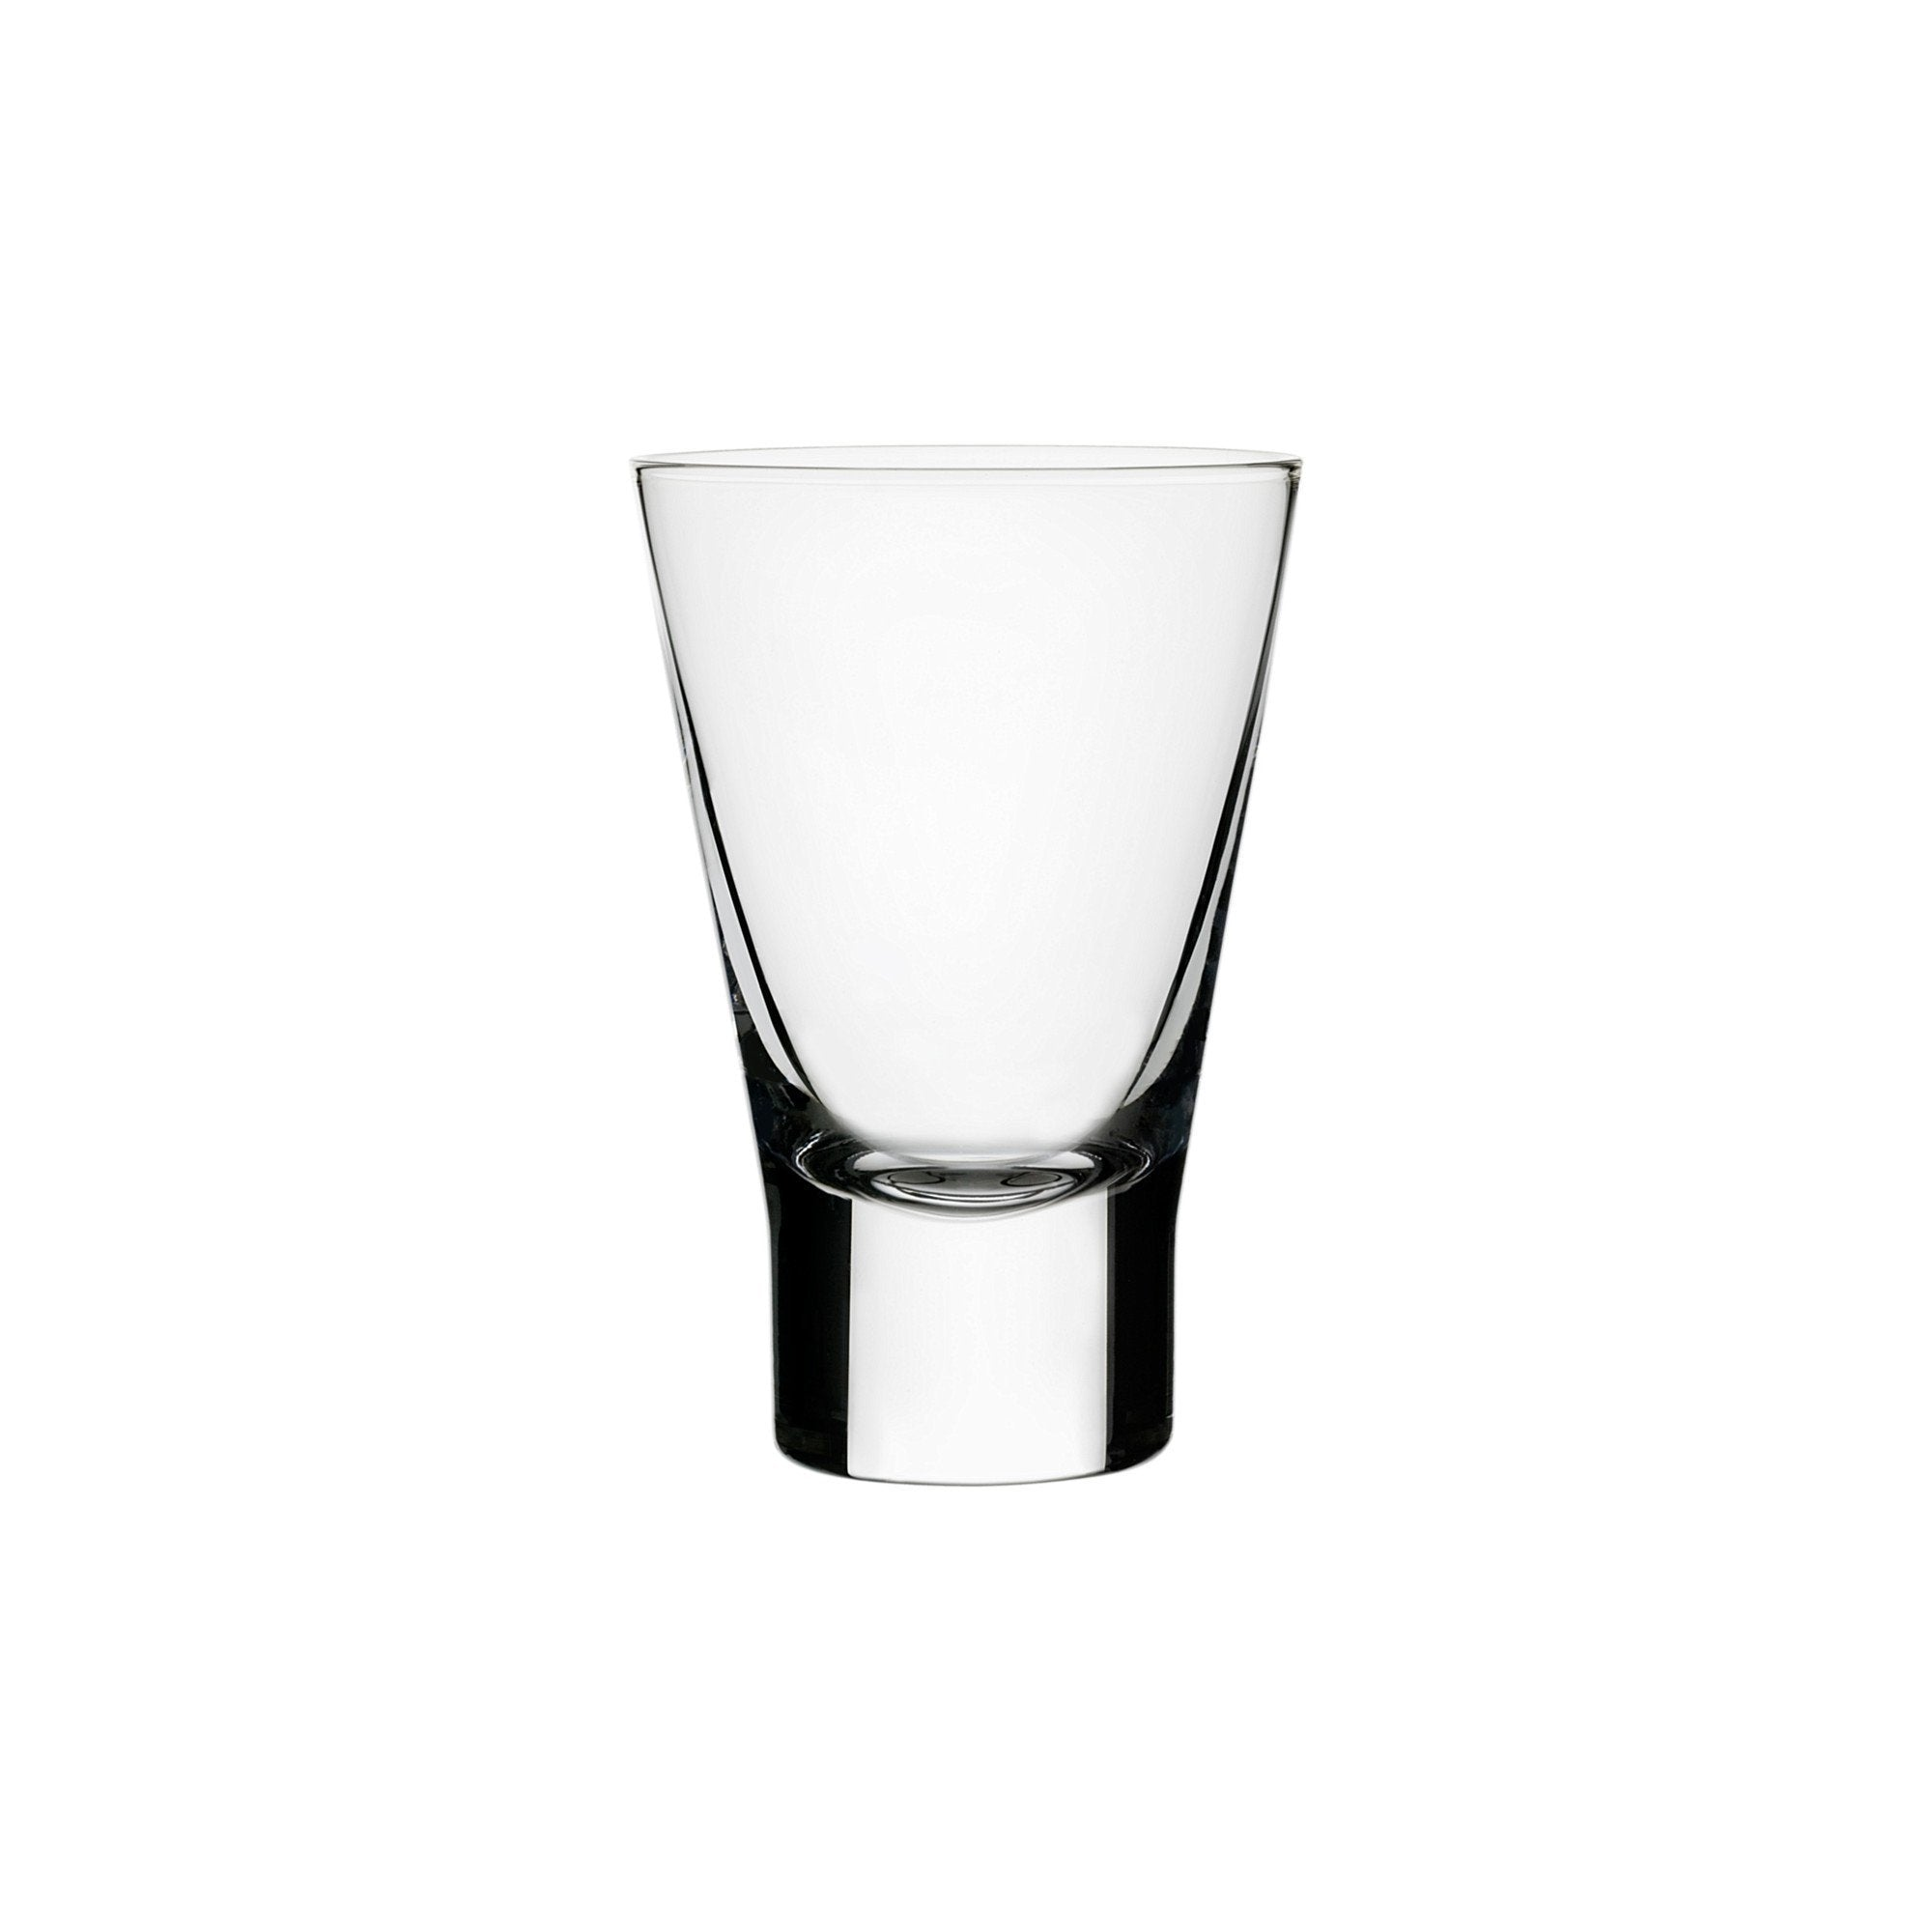 Iittala, Aarne Cordial Glasses, Set of 2, - Placewares